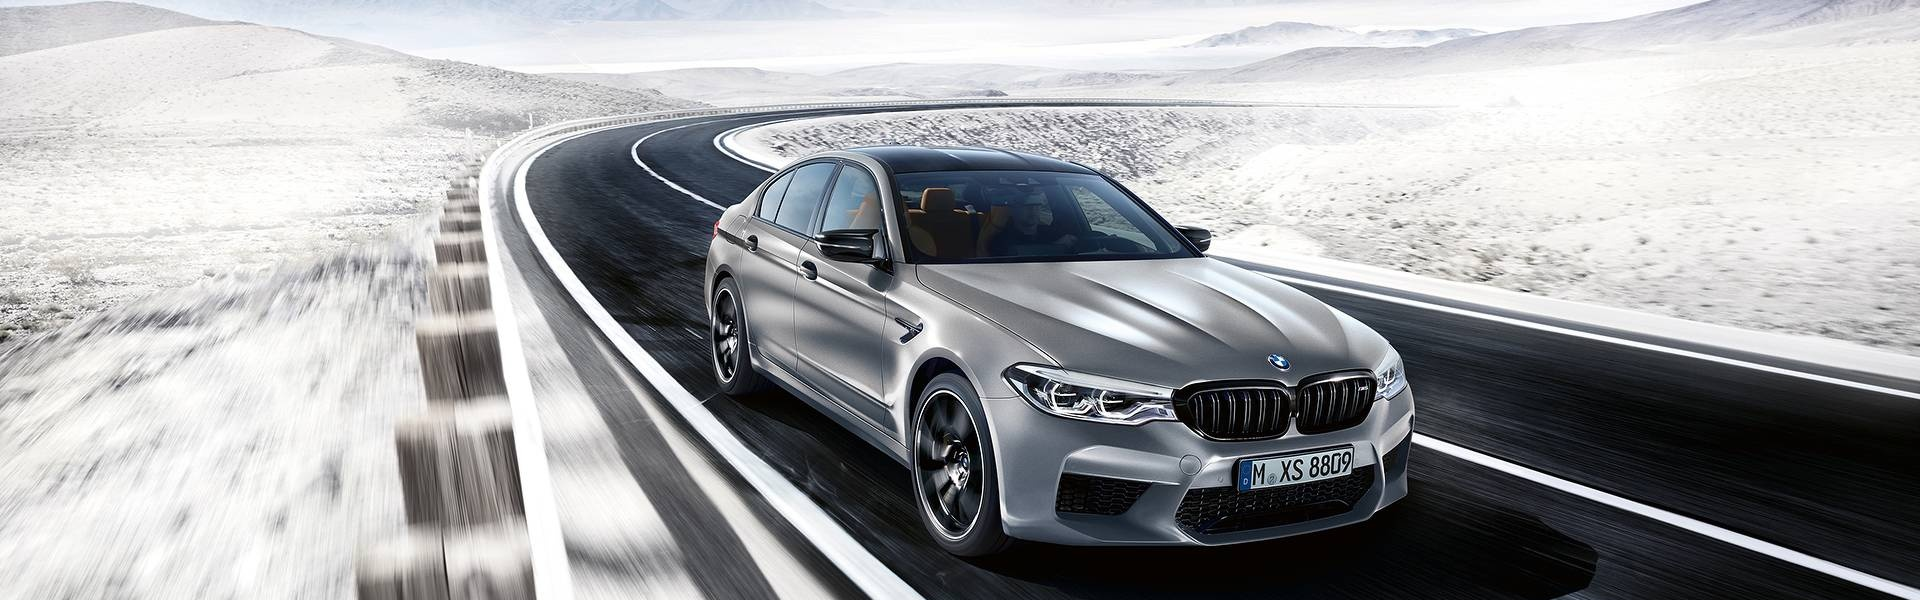 2019-bmw-m5-competition.jpg